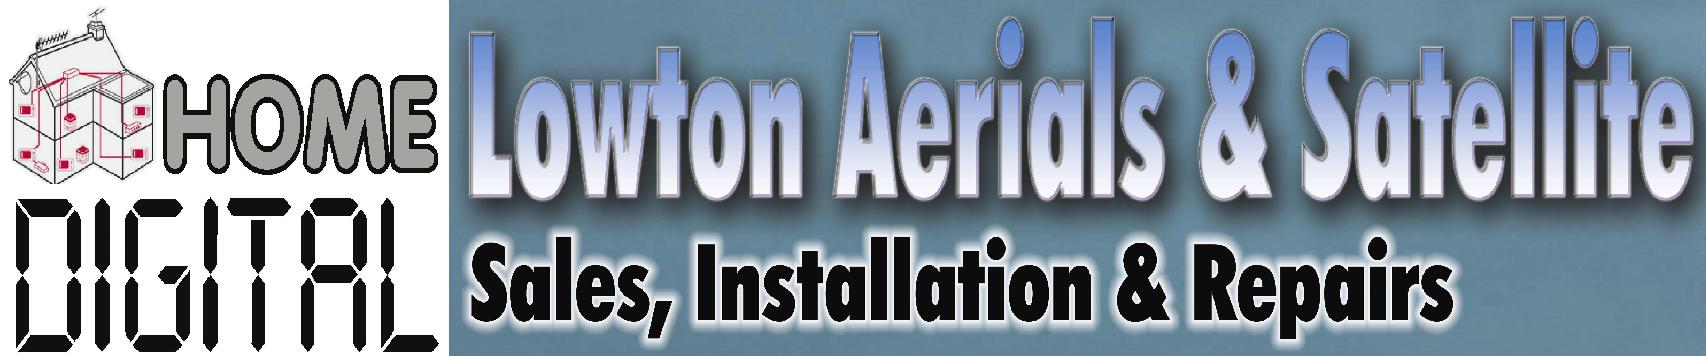 Satellite Leigh ~Aerial installer Leigh~ Sky installer Leigh ~ Aerial & Satellite Leigh ~ Satellite installation Leigh